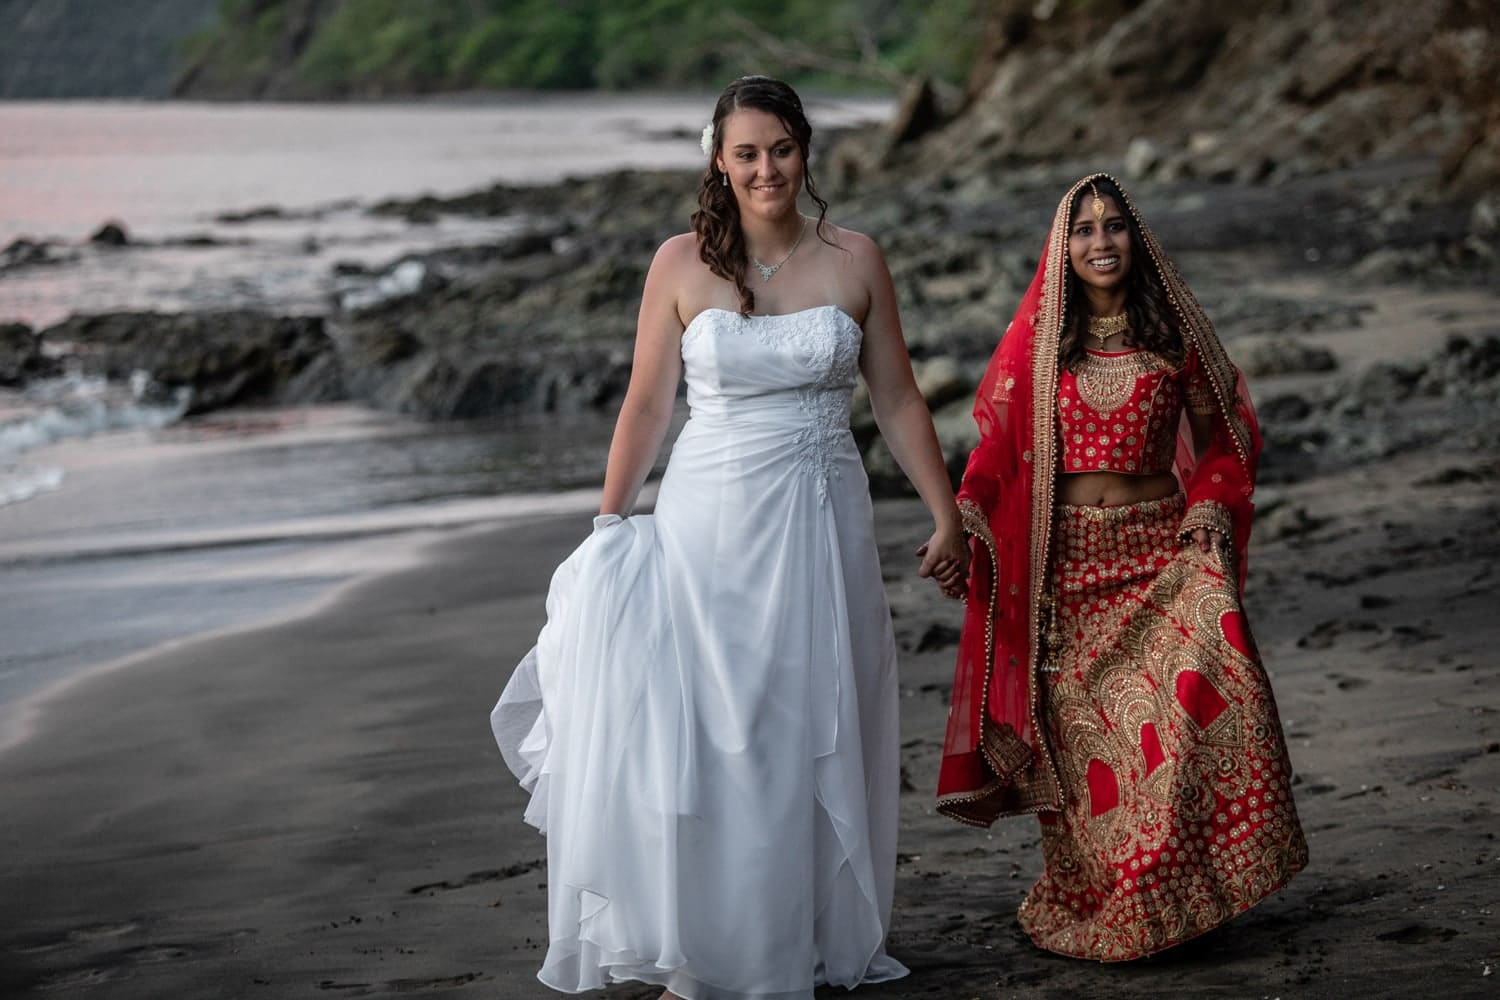 Beautiful brides holding hands and walking on beach in Guanacaste at sunset.